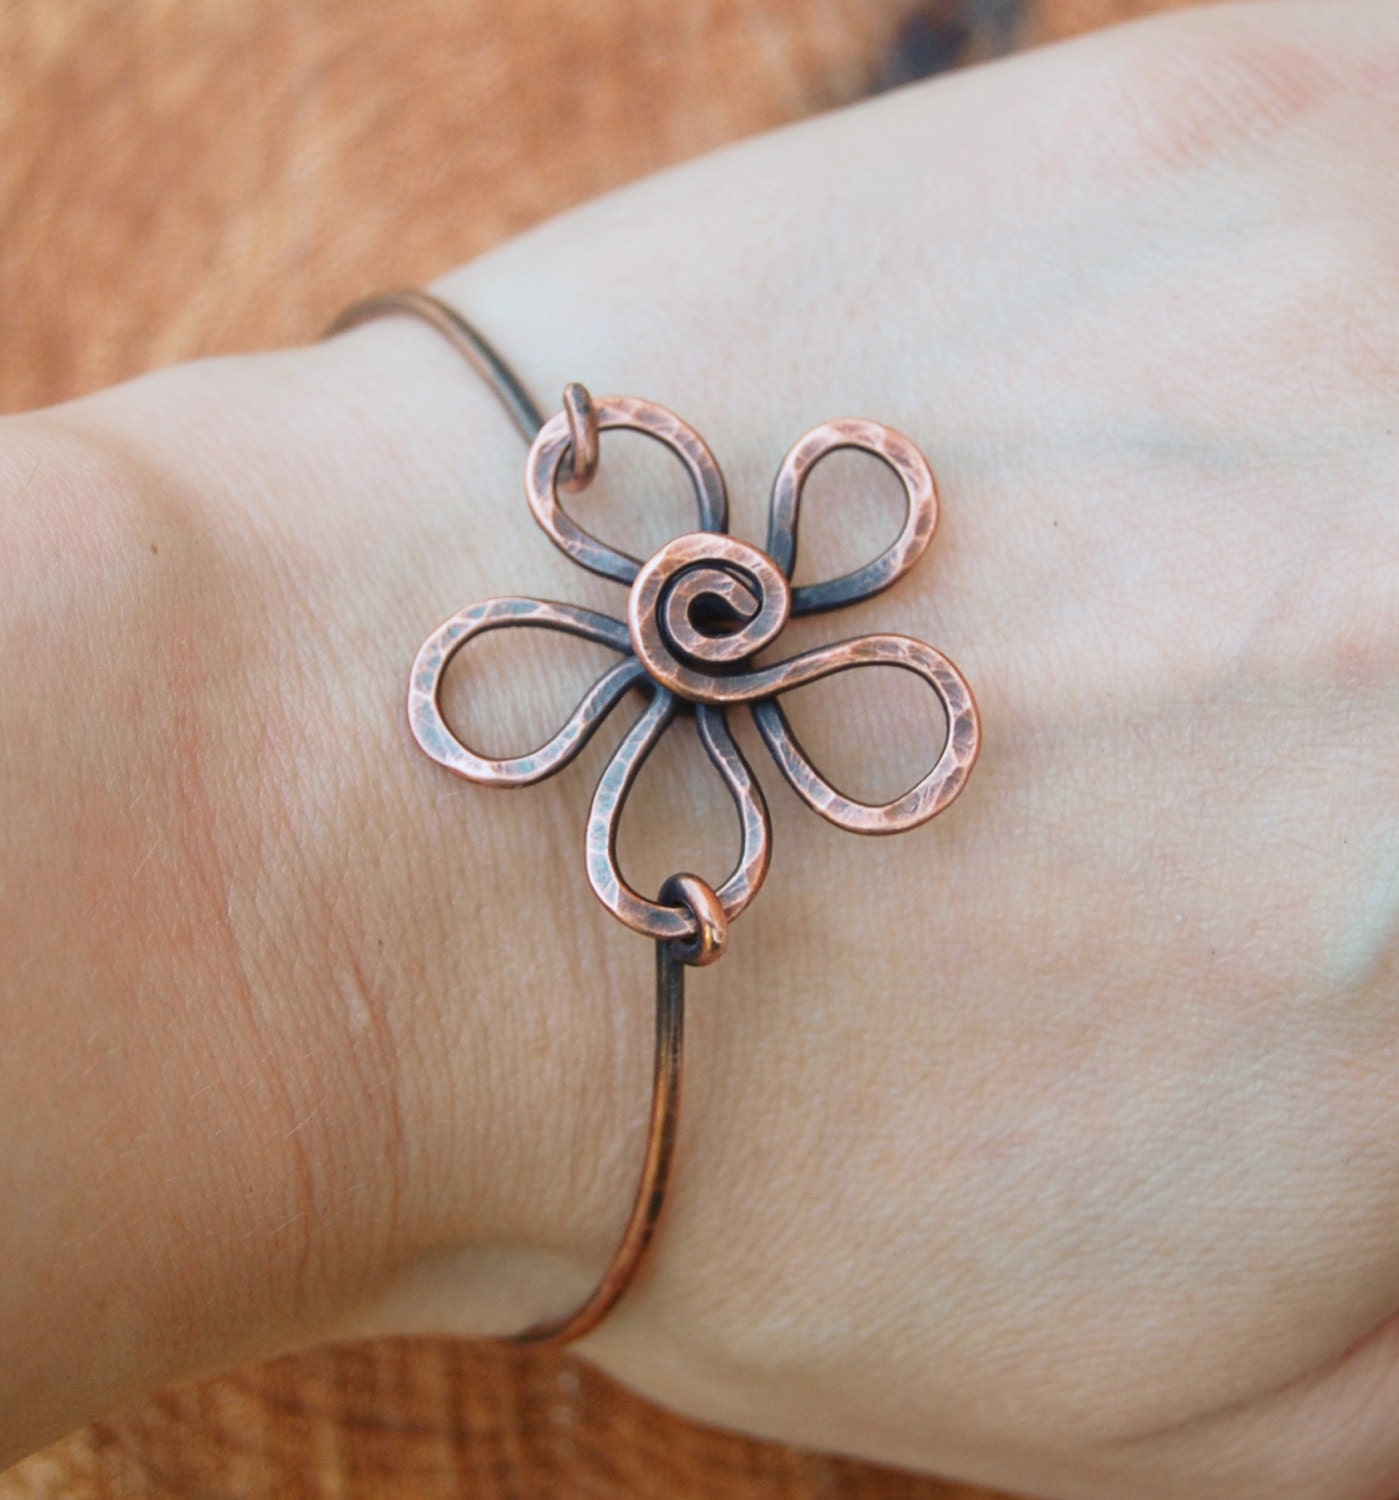 Wire Bracelets With Charms 2: Flower Bracelet. Metal Flower. Wire Flower. Oxidized Copper